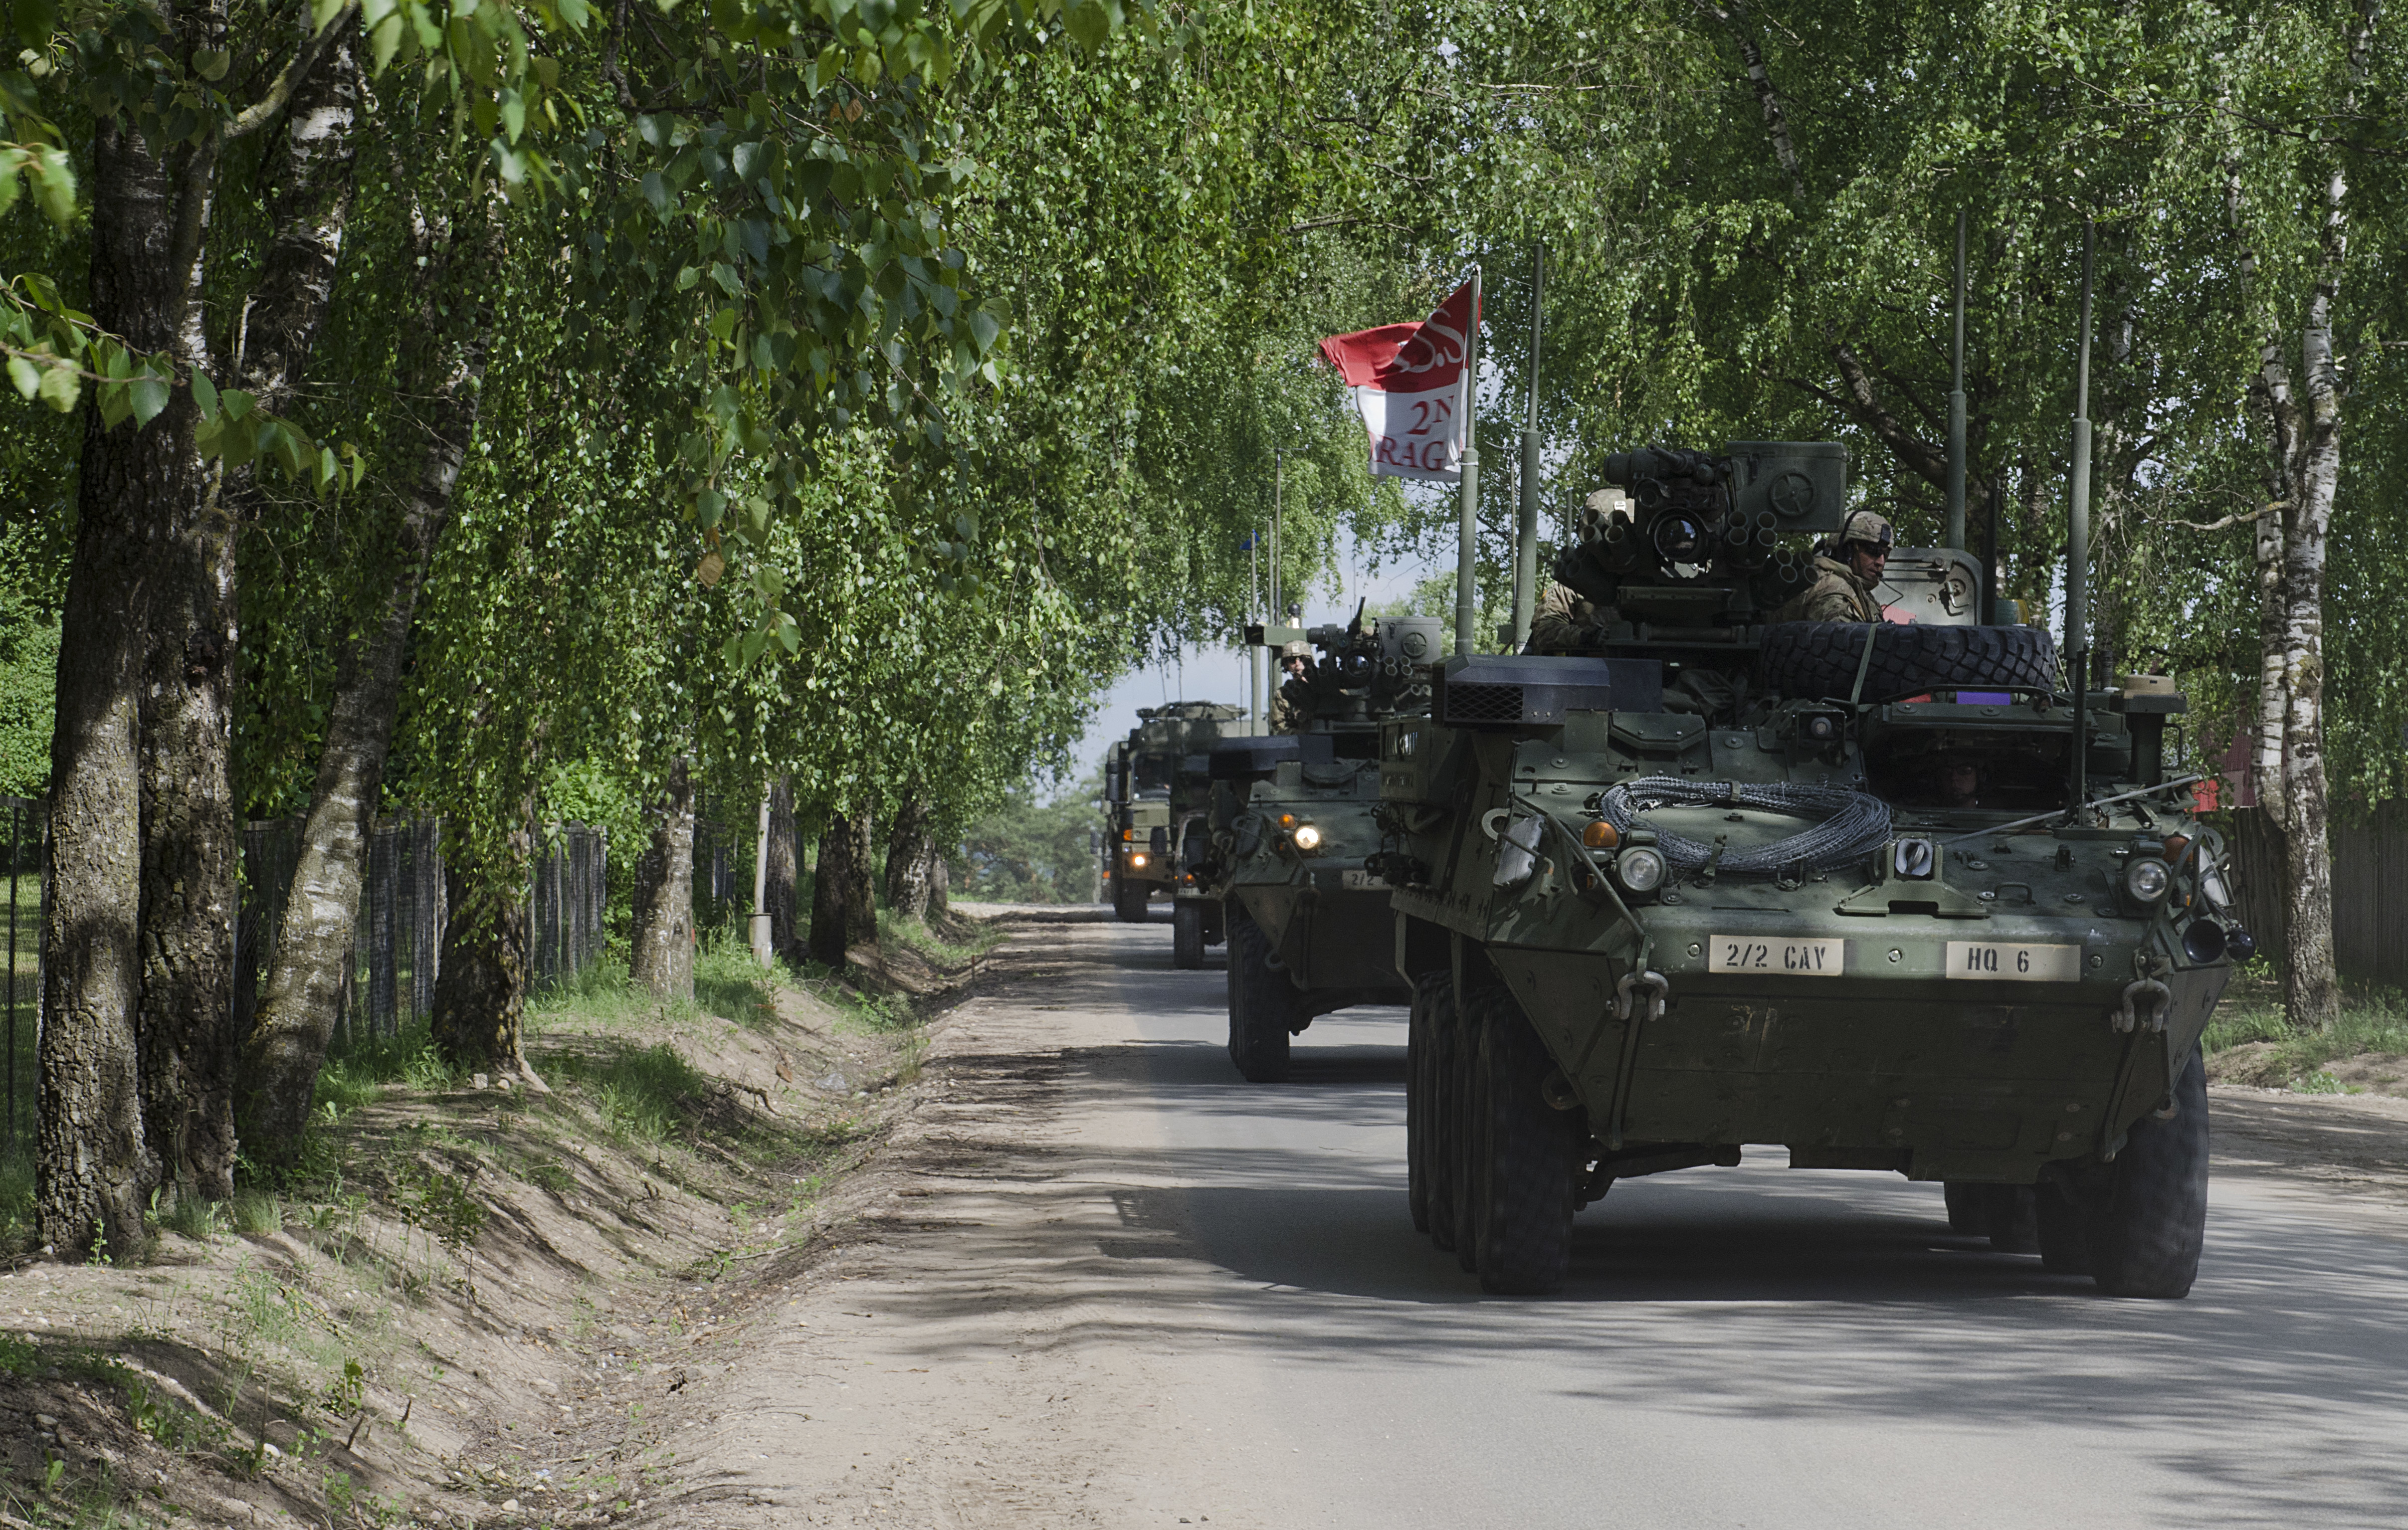 U.S. Strykers with Enhanced Forward Presence Battle Group Poland arrived to Rukla, Lithuania after a two-day tactical road march across Eastern Europe, June 18, 2017, as part of Saber Strike 17. The Poland-based Battle Group conducted the convoy portion of the Field Training Exercise to demonstrate their ability to execute a forward passage of lines across the only land connection between the Baltic States of Estonia, Latvia and Lithuania, which is known as the Suwalki Gap. (U.S. Army photo by Sgt. Justin Geiger)